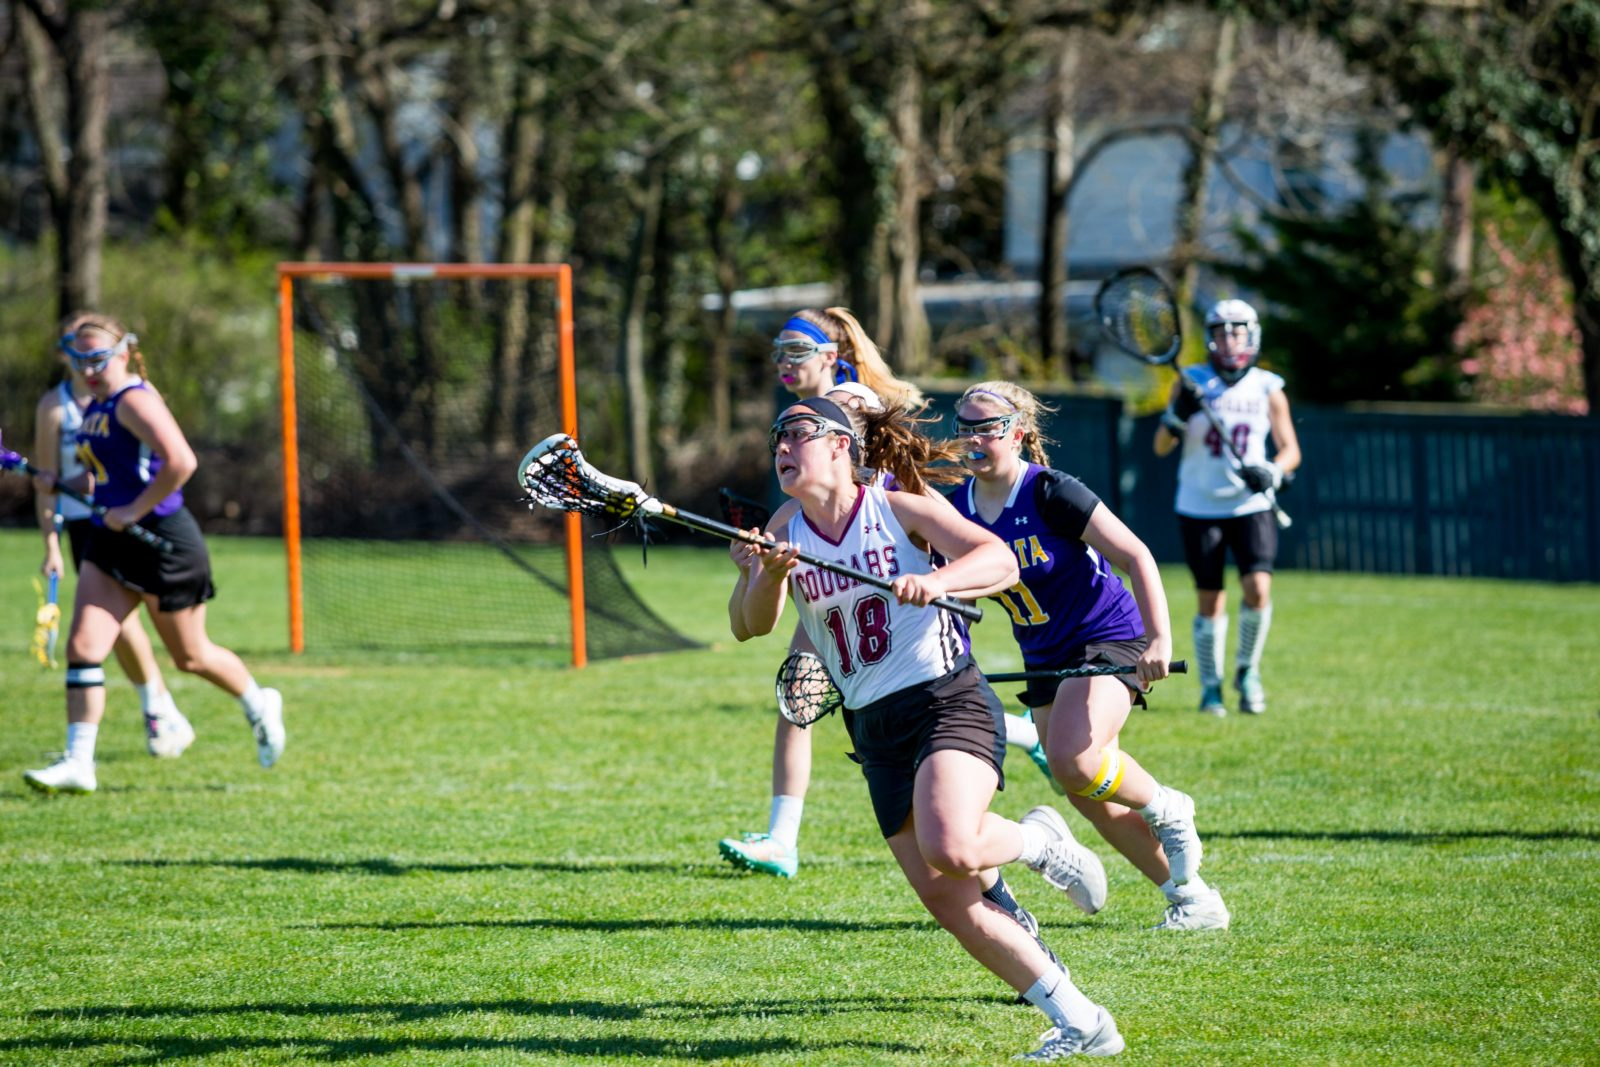 Girls LAX: Playing against Ephrata, the girls LAX team won - 17-3. The team was then 7-1 in the league and 10-3 overall.